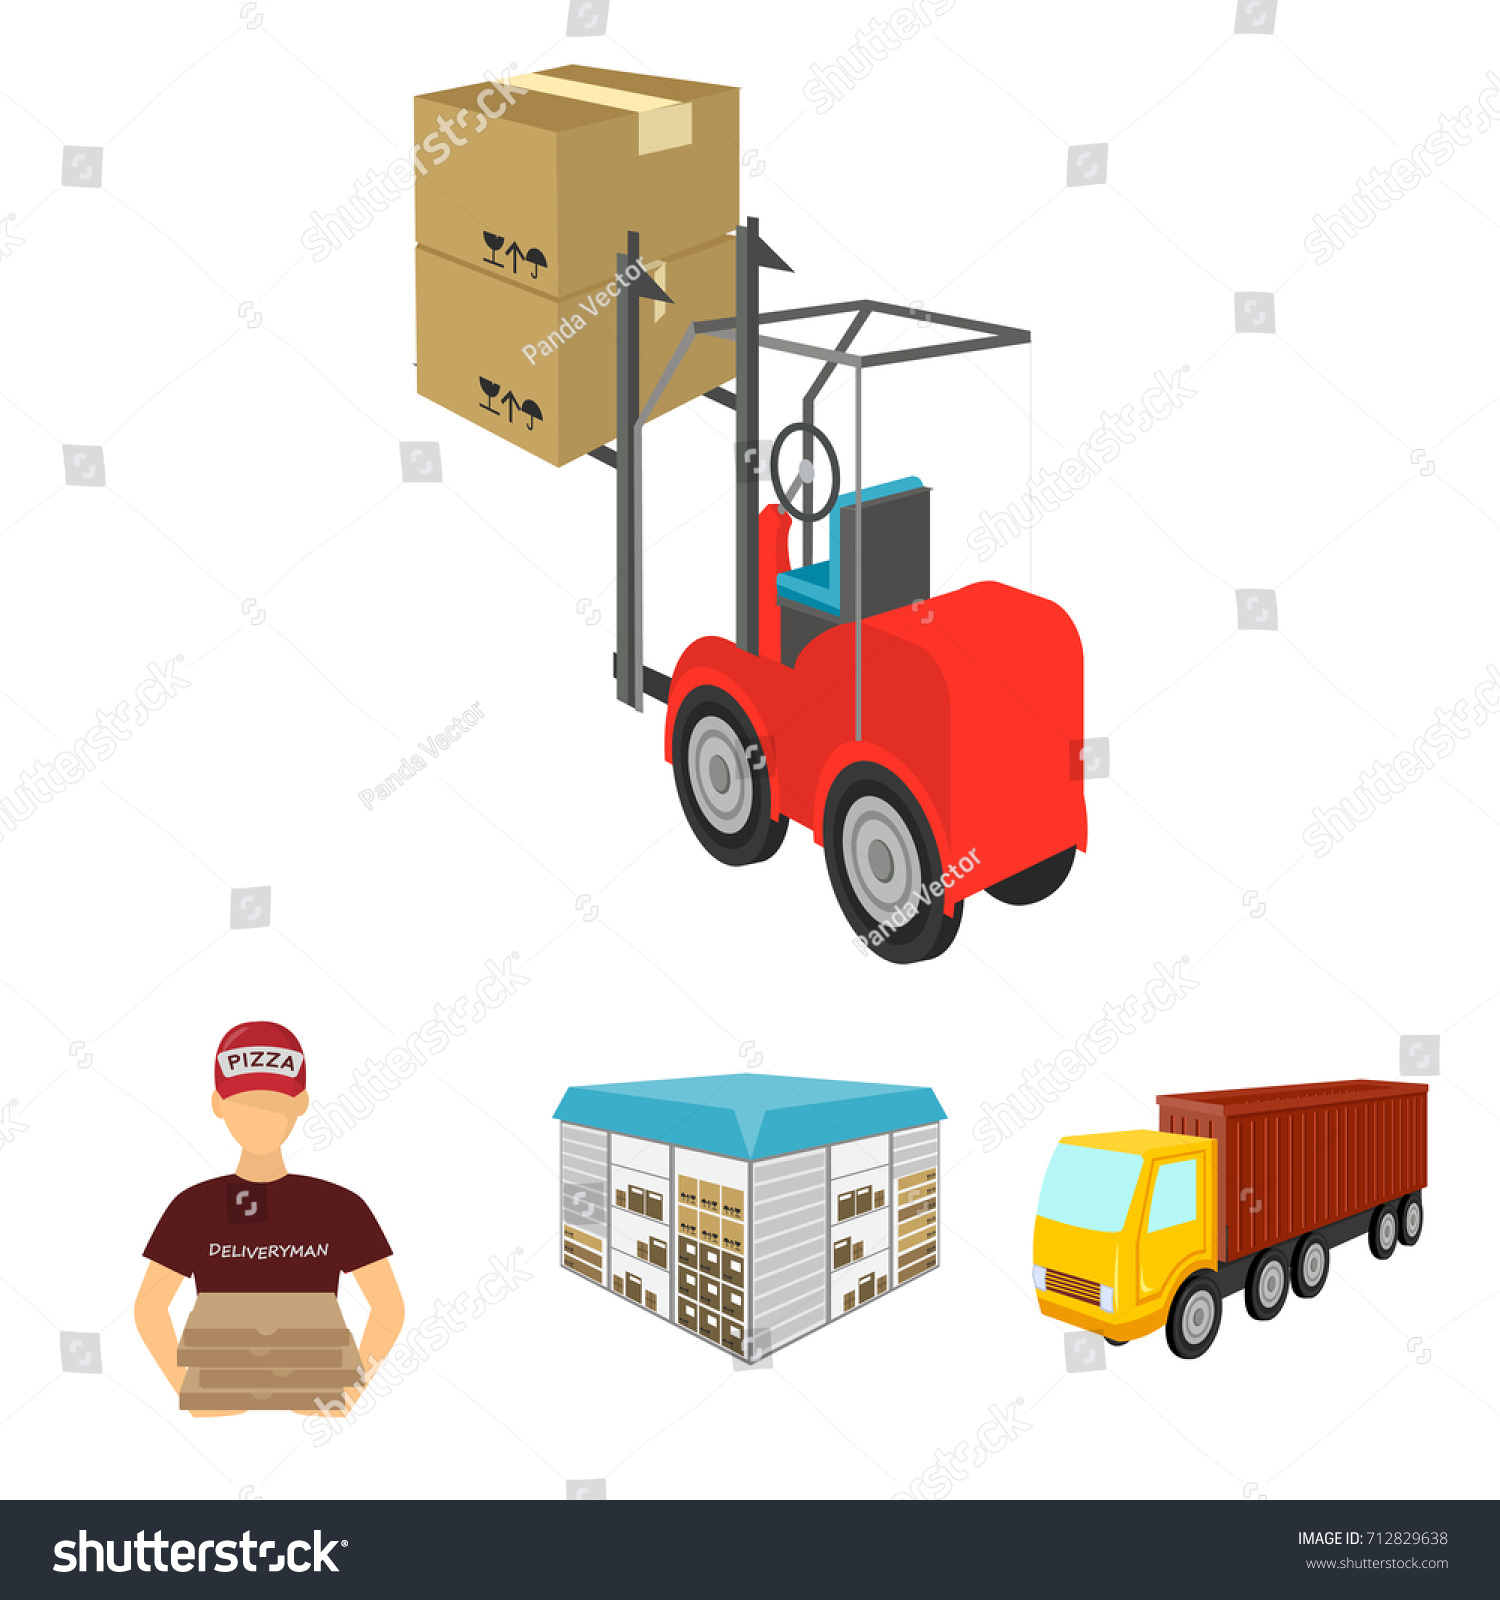 Truck, Courier For Delivery Of Pizza, Forklift, Storage Room. Logistics And  Delivery